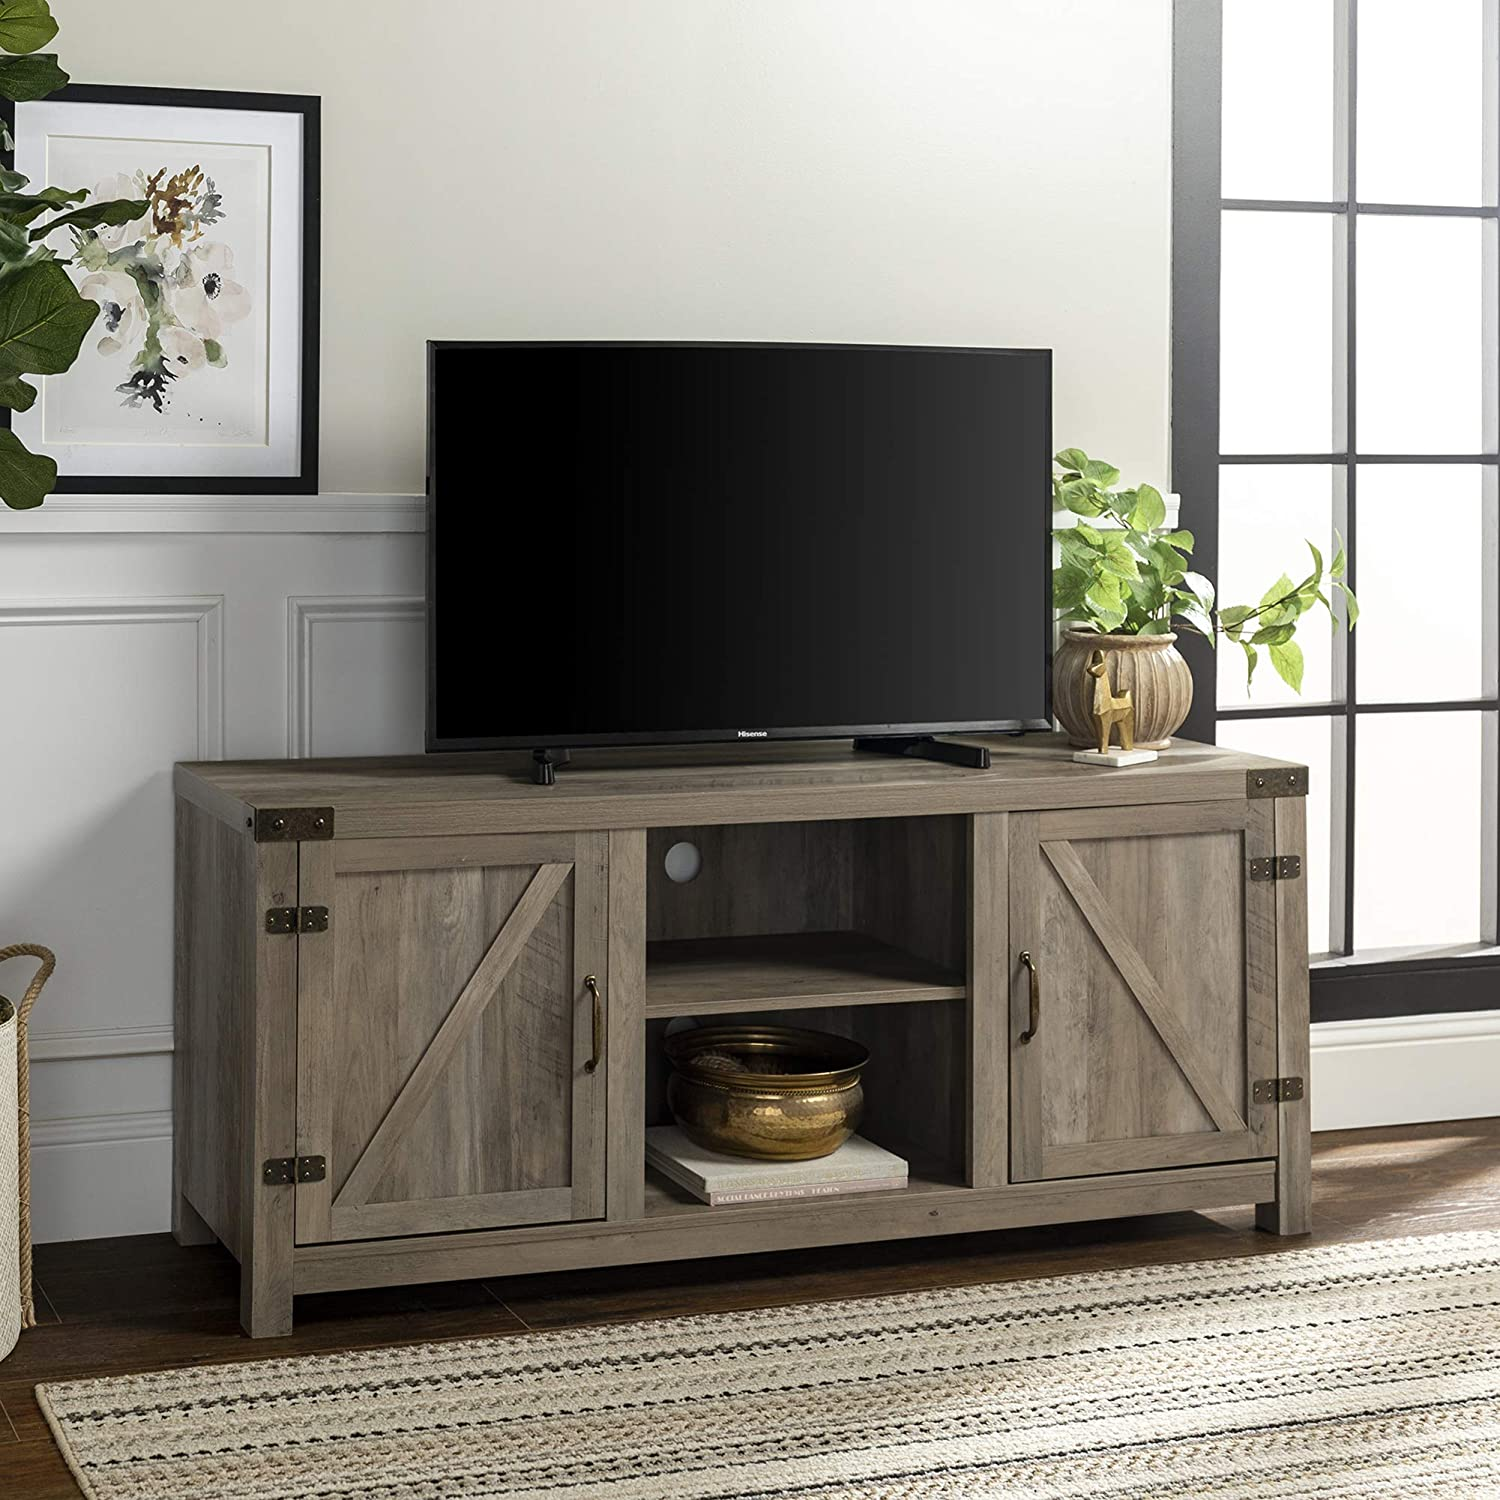 "Walker Edison Farmhouse Barn Wood Universal Stand for TV's up to 64"" Flat Screen, Storage Cabinet Doors and Shelves, Entertainment Center, 58 Inch, Grey Wash: Furniture & Decor"